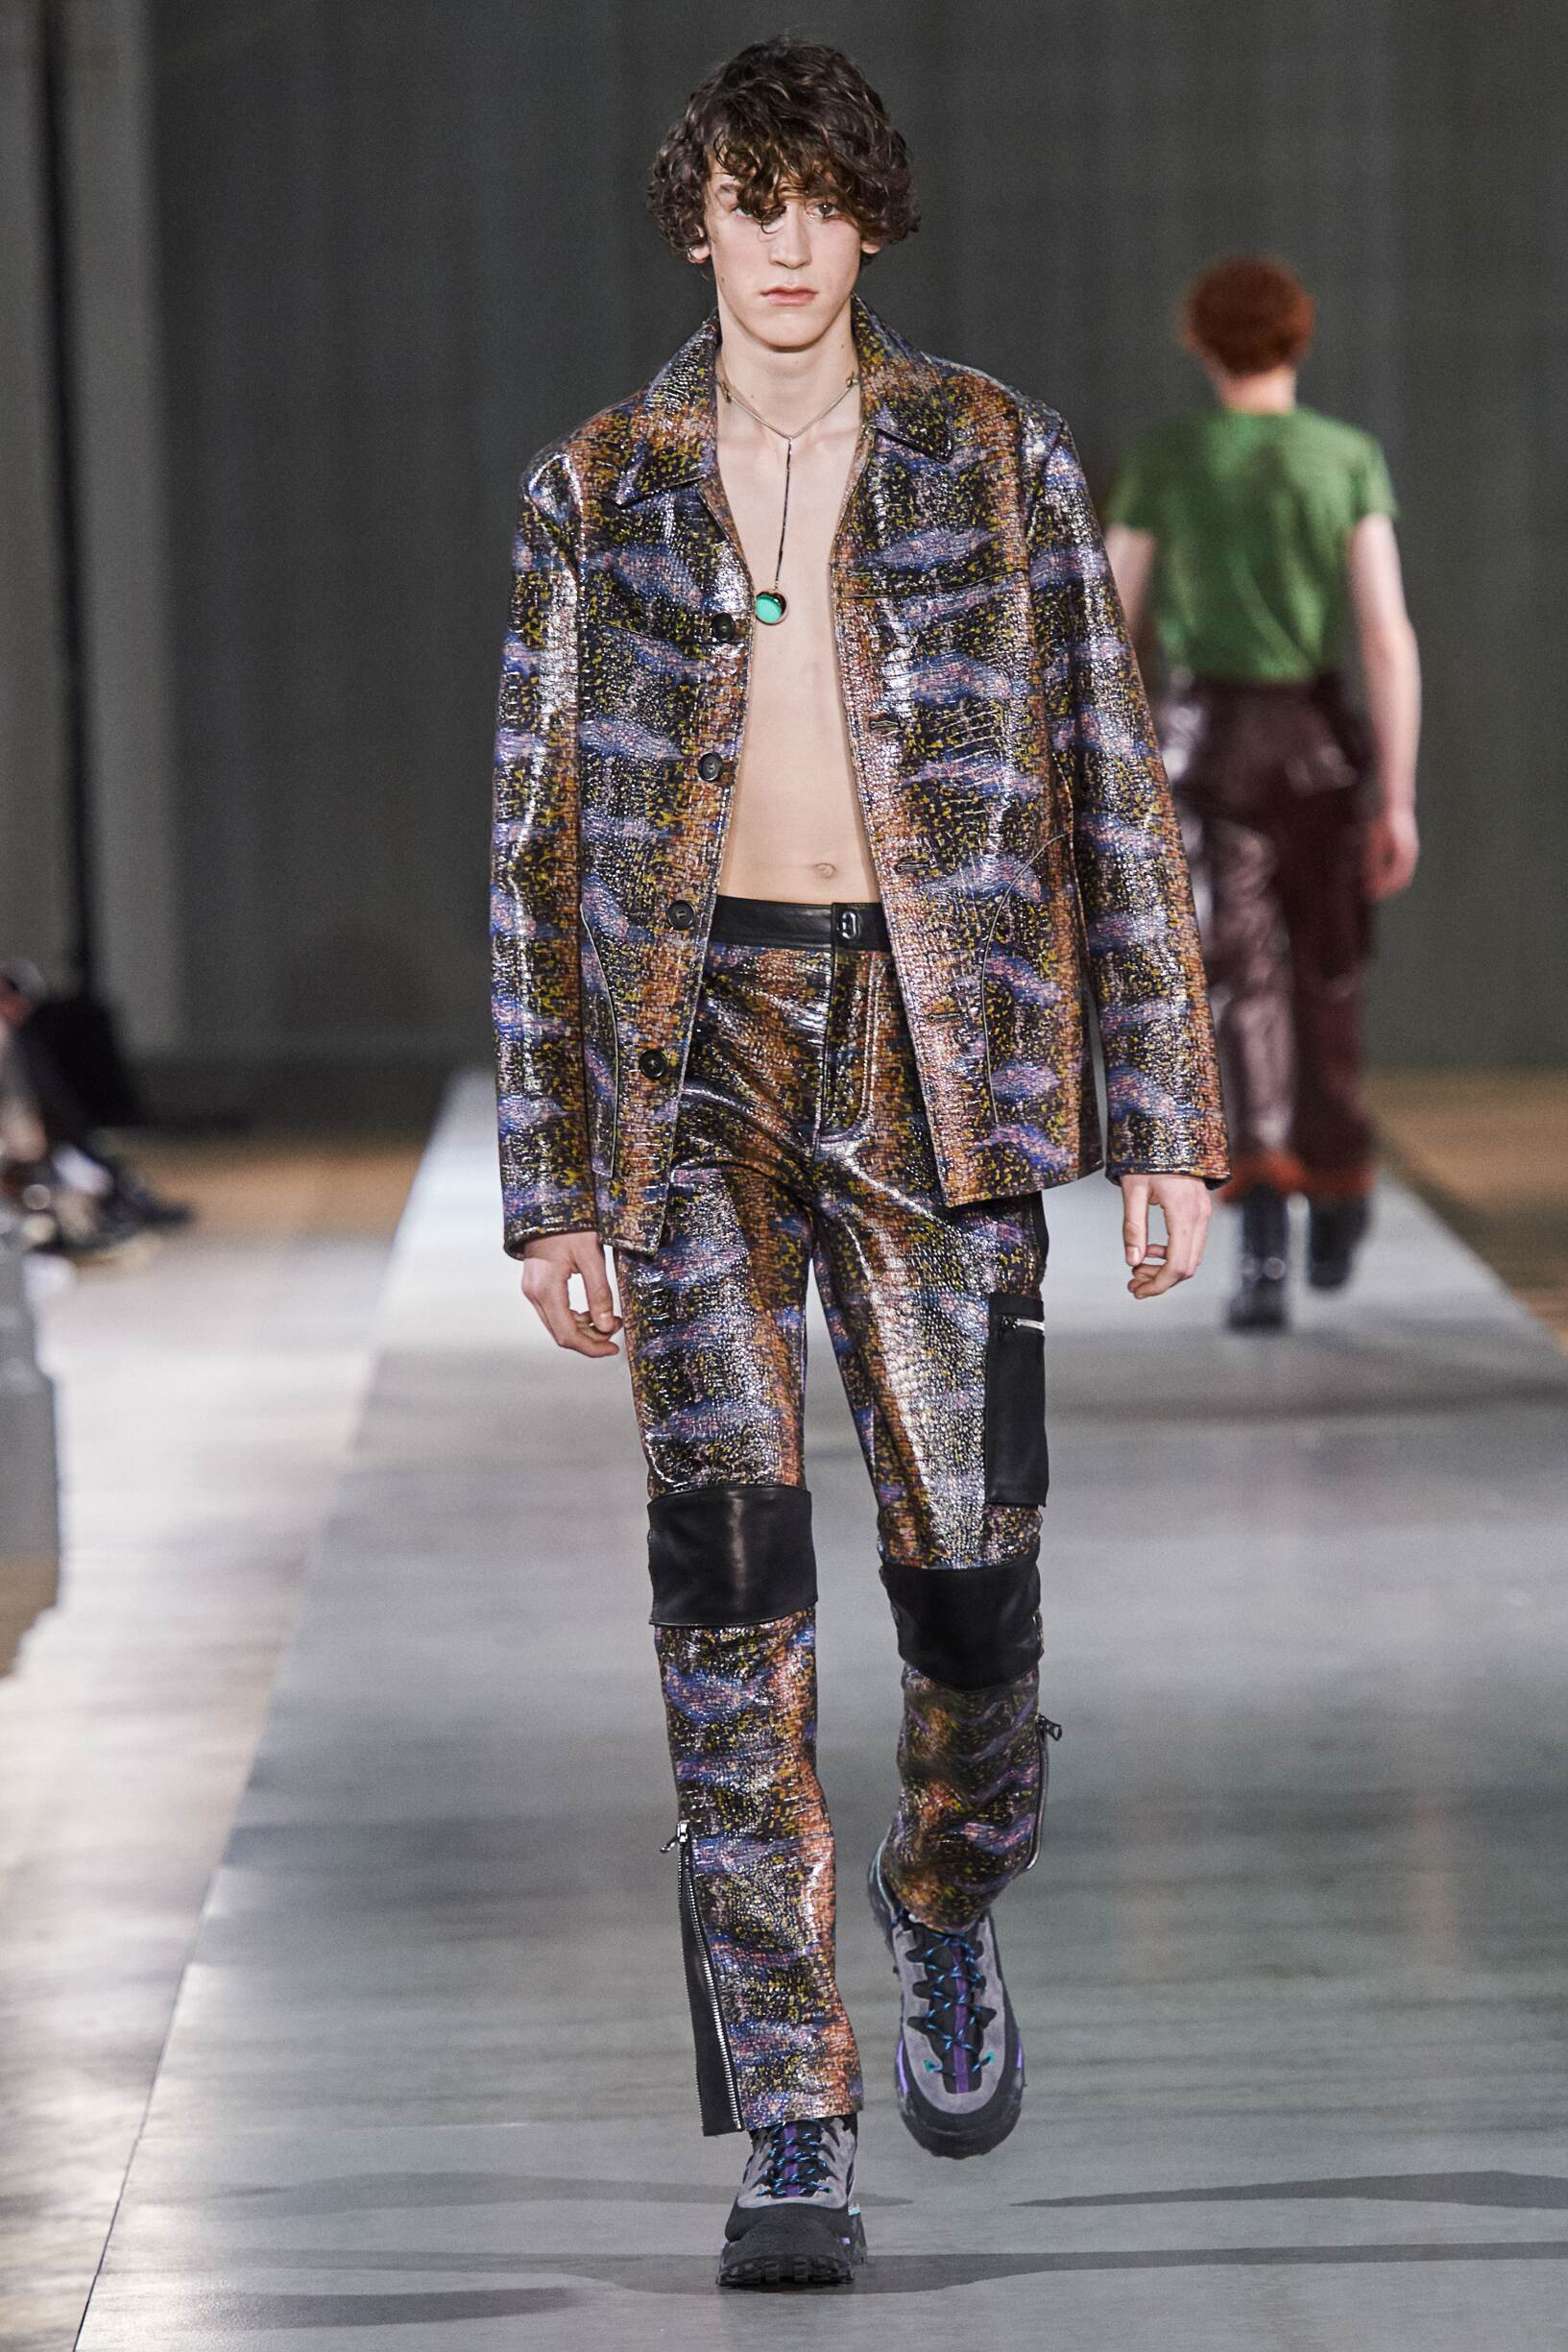 Winter 2019 Man Trends Acne Studios